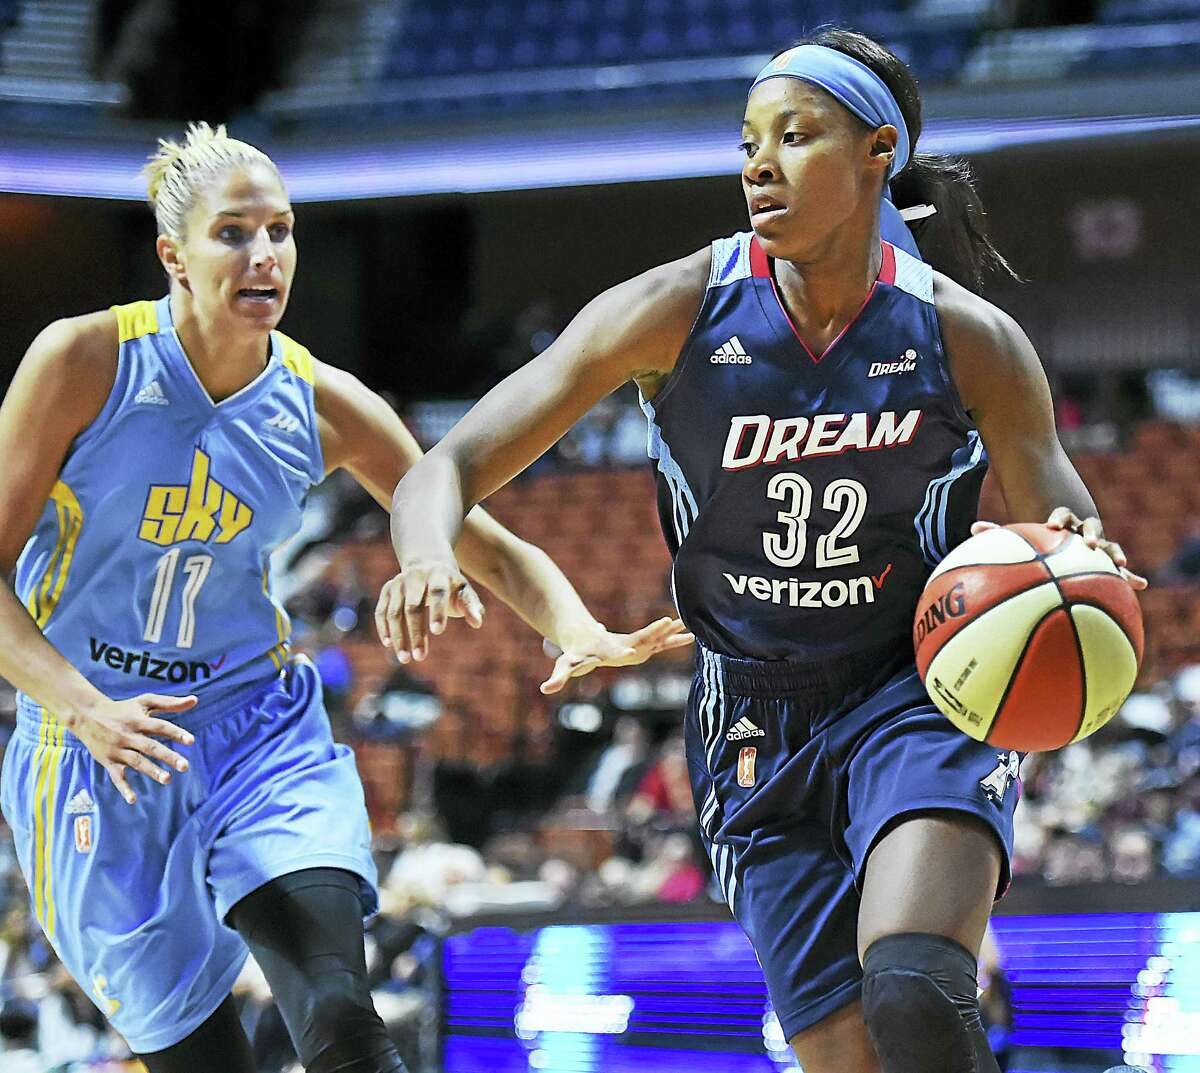 Three weeks ago, New Haven native Bria Holmes (32) was a senior in college. Thursday she was driving to the basket against the reigning WNBA Player of the Year, Elena Delle Donne of the Chicago Sky at the Mohegan Sun Arena.